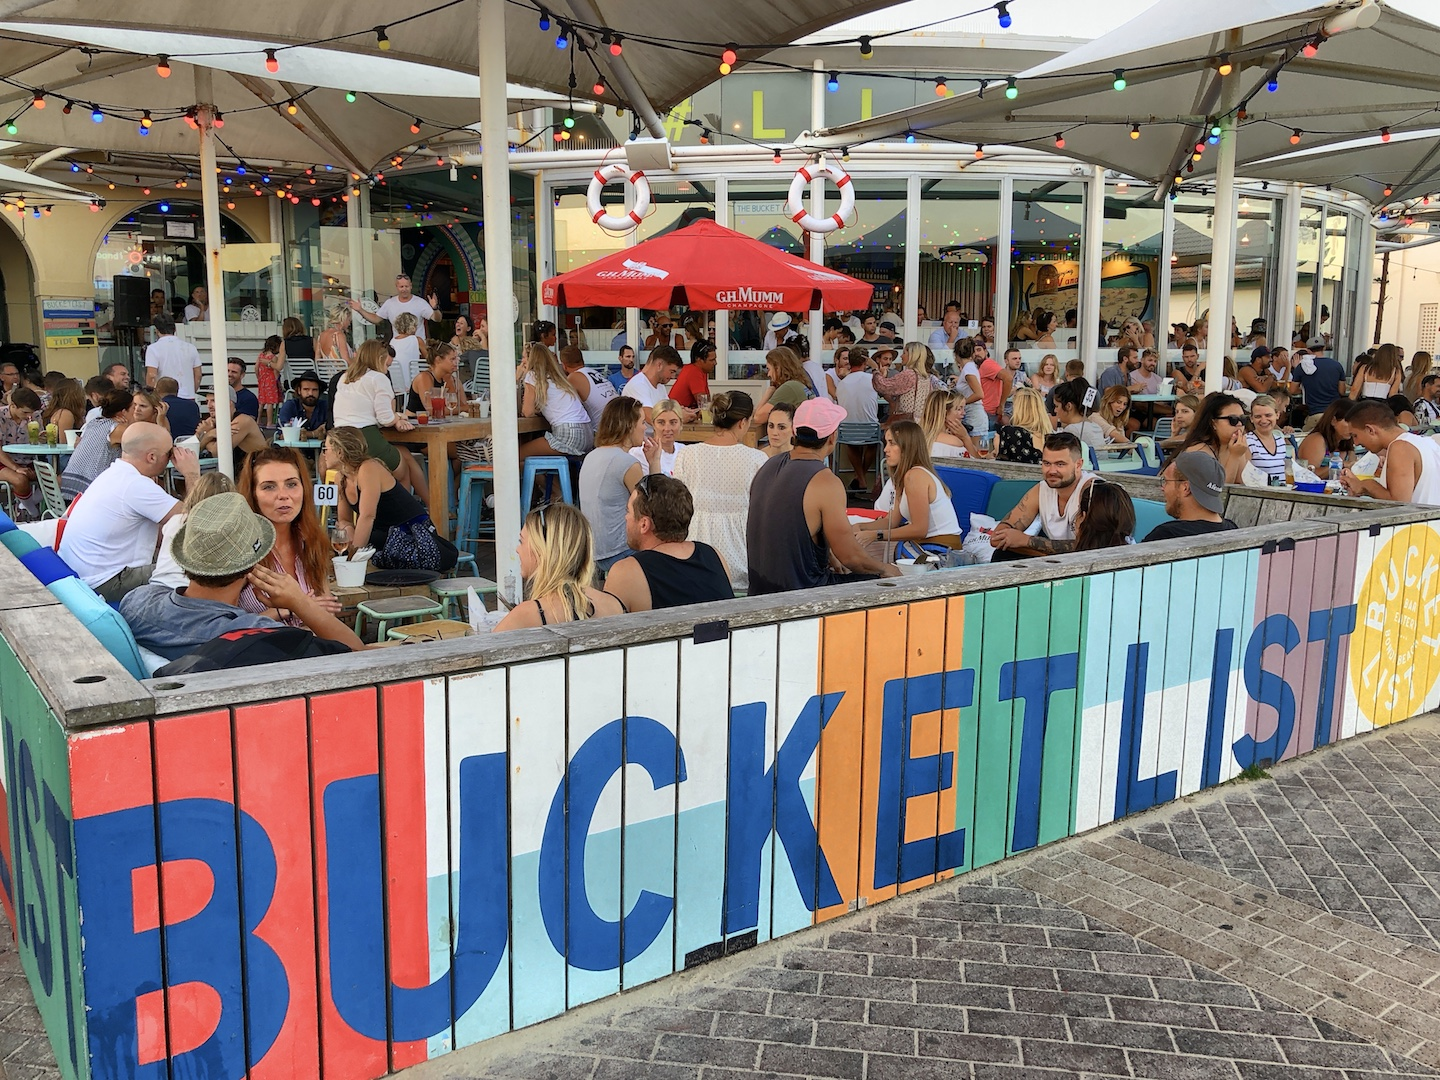 Bar Bucket List, Bondi Beach, Sydney